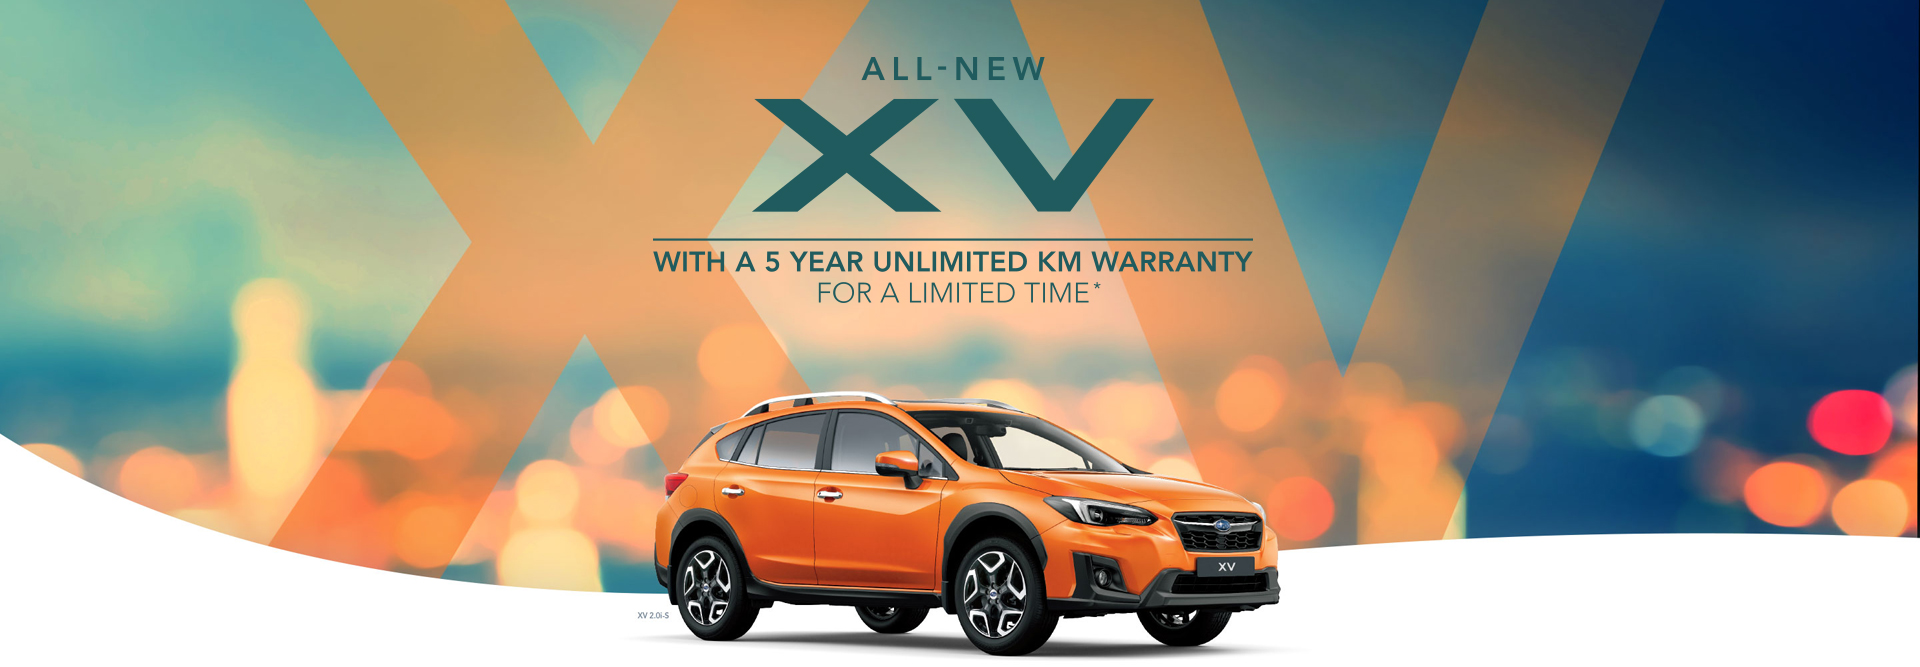 All-new Subaru XV - Pre-order now for June delivery